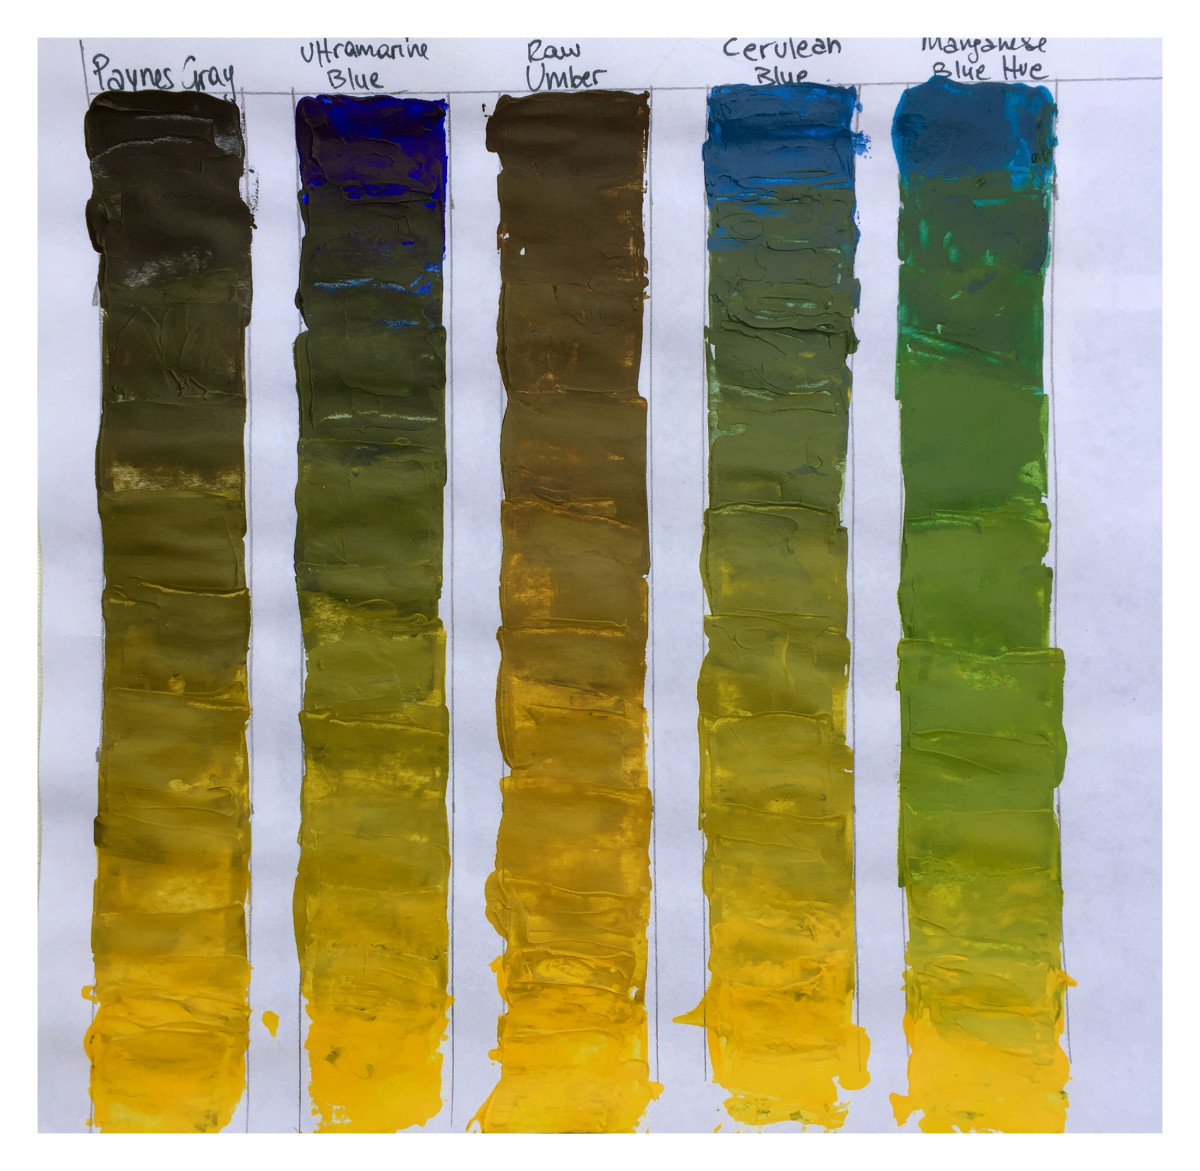 Table 2: shows the gradation from one pure color to the other in the mix